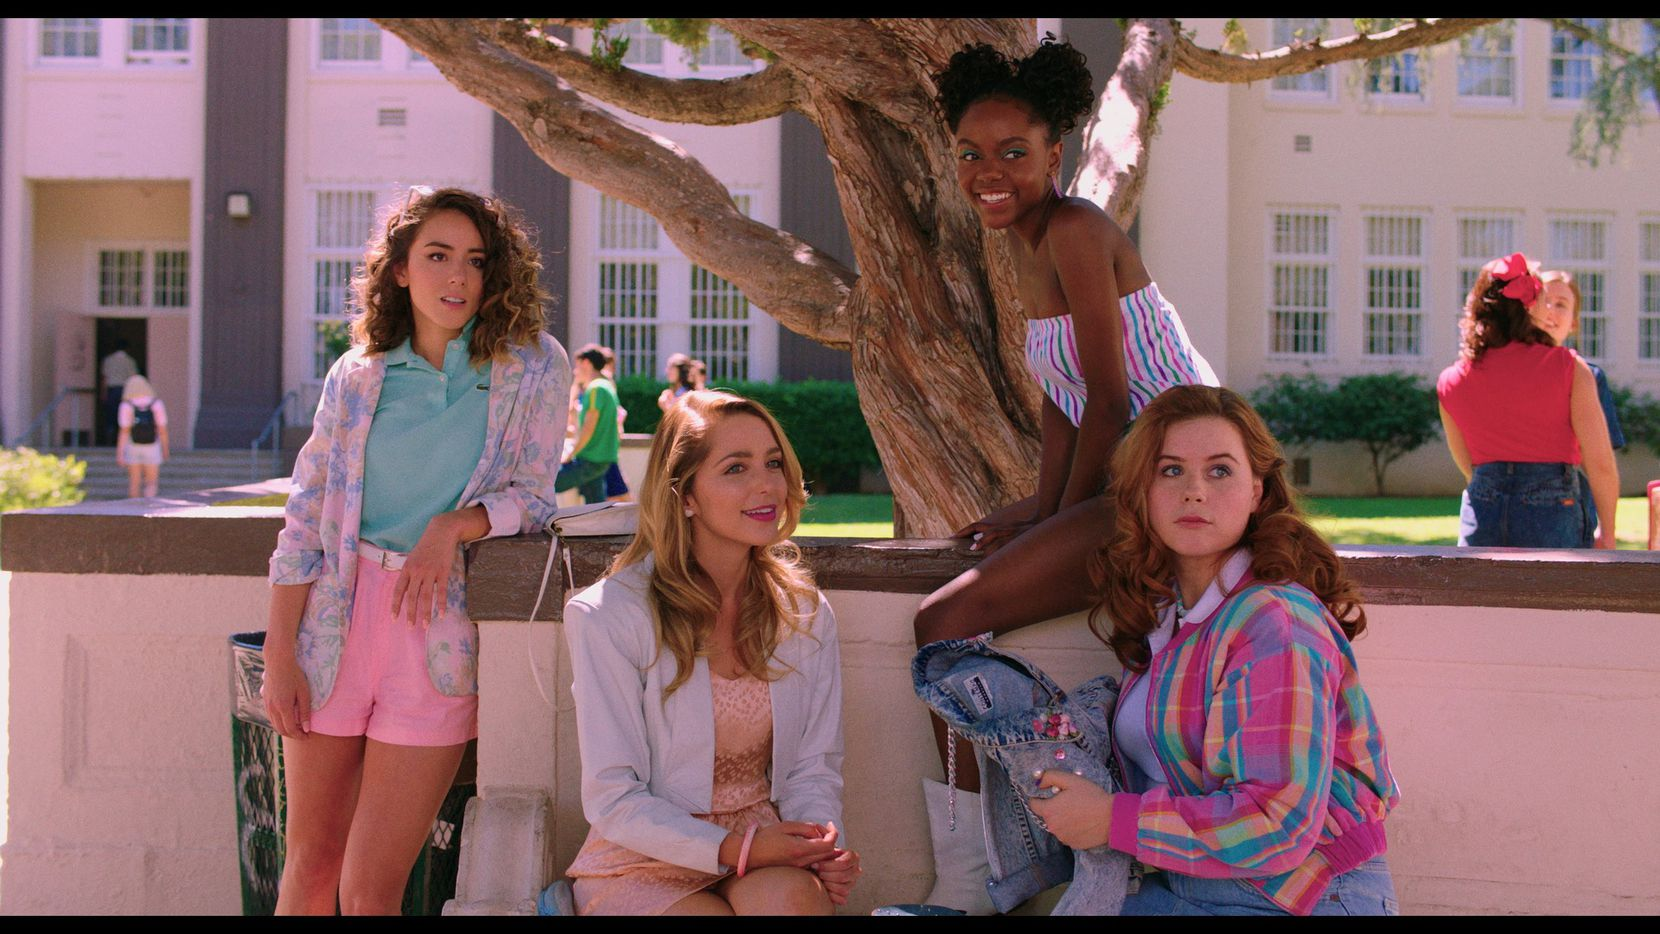 Chloe Bennet, Jessica Rothe, Ashleigh Murray and Jessie Ennis star in the new movie, Valley Girl, written by Dallas' own Amy Talkington.